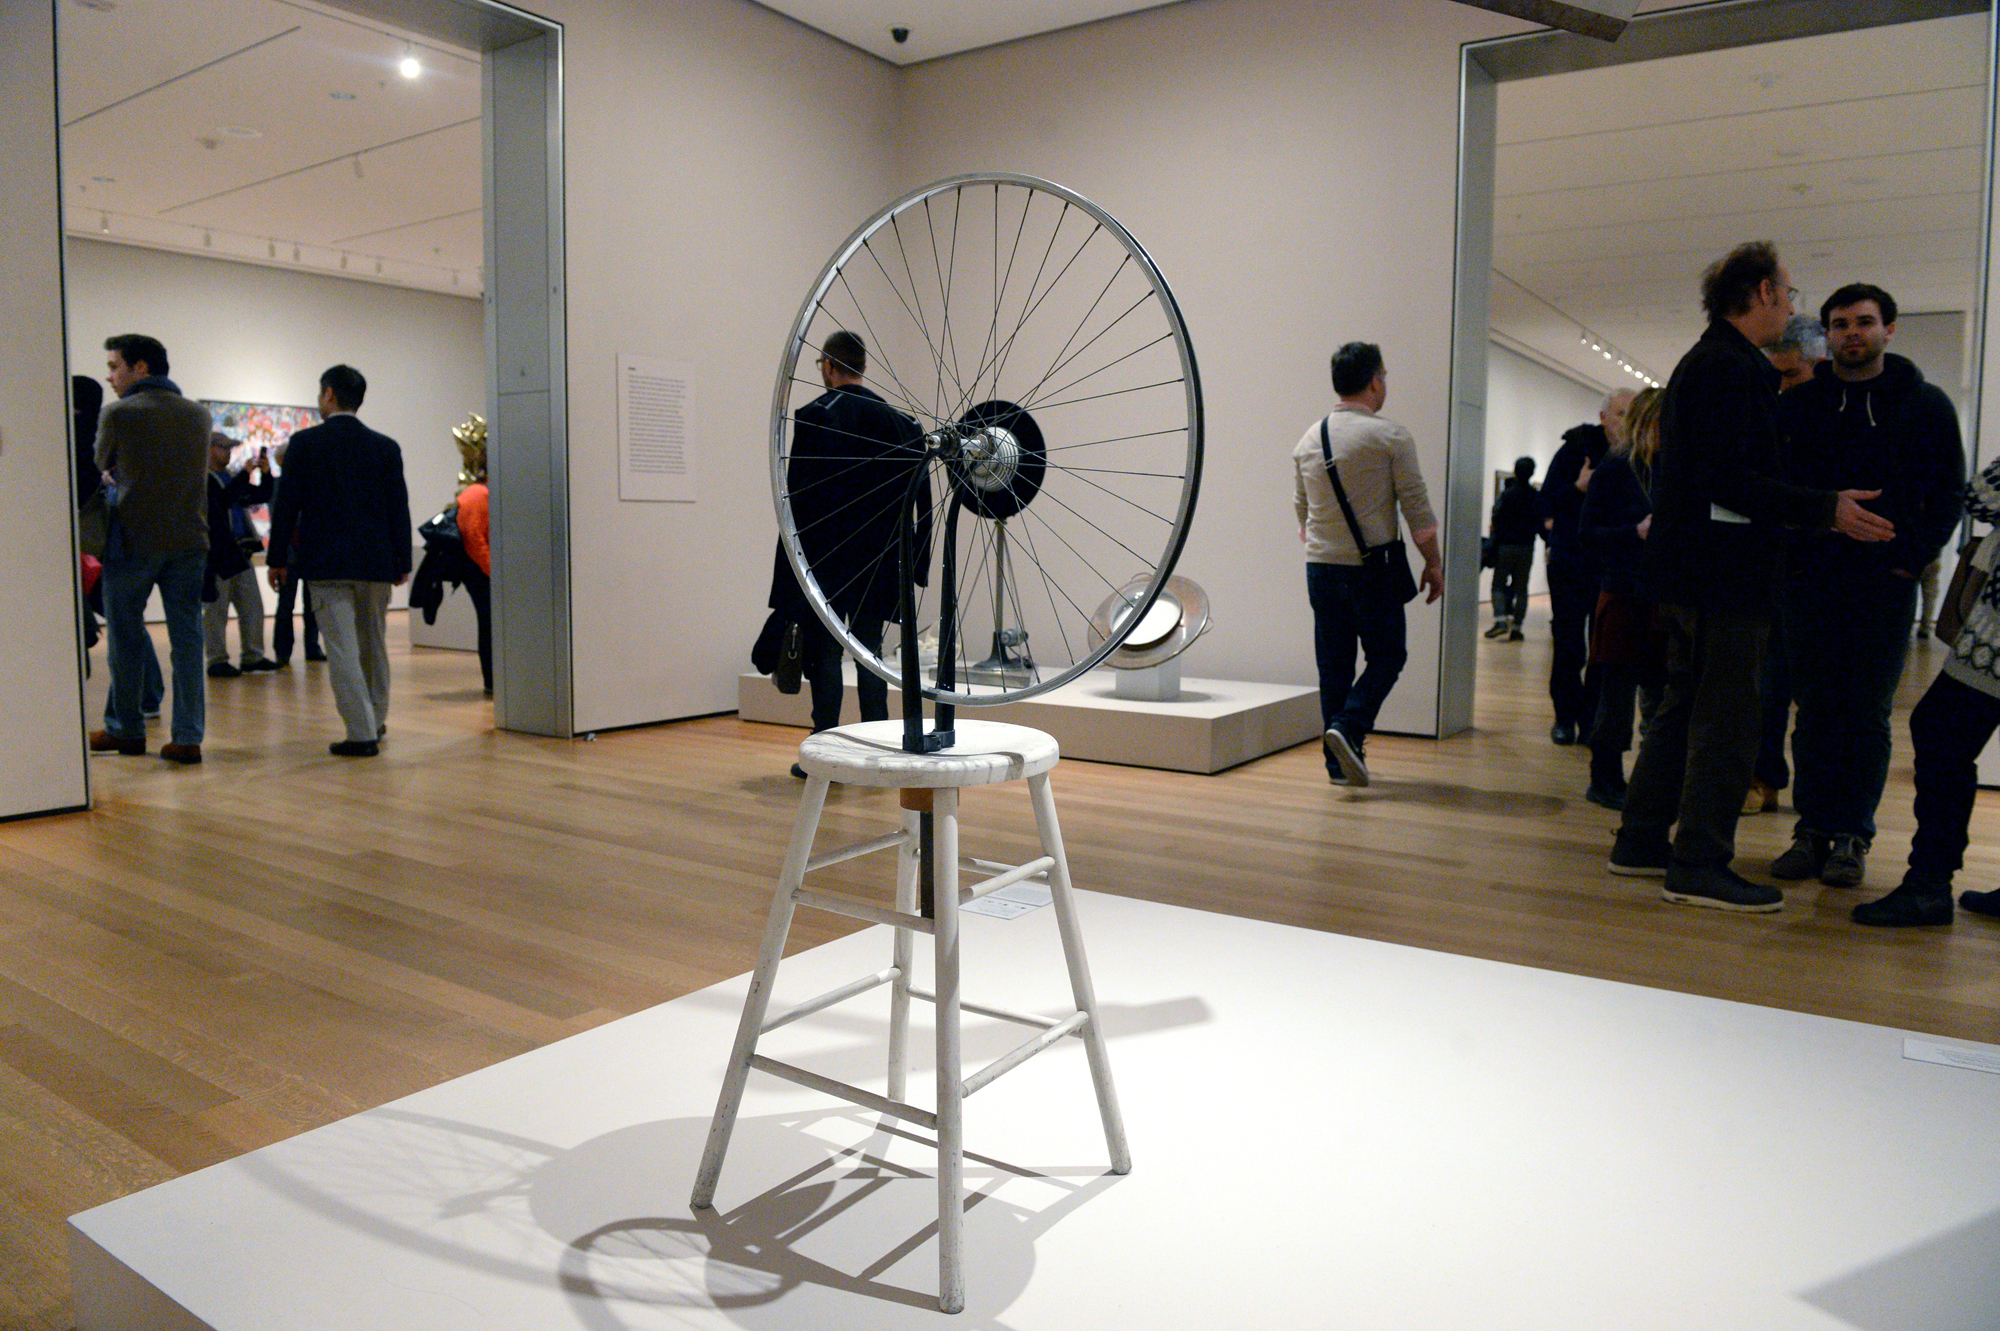 """Roue de bicyclette"", un ready made de Marcel Duchamp, au Musée d'art moderne de New York."